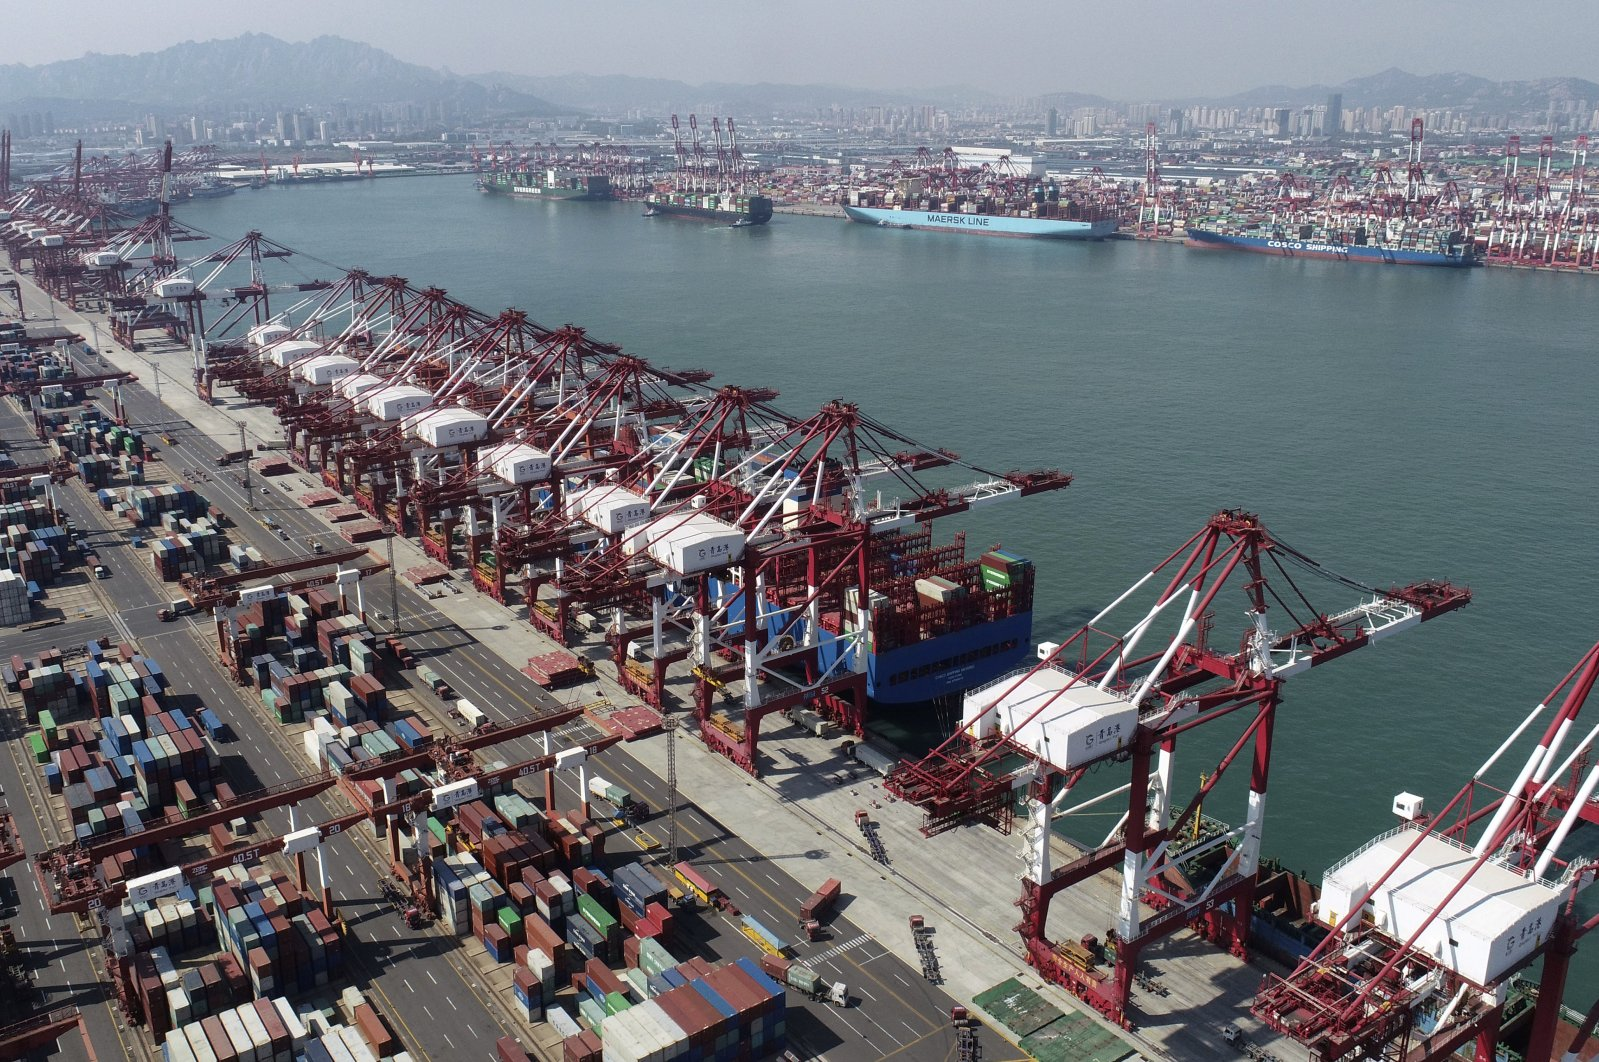 Container ships are docked at a container port in Qingdao, Shandong Province, eastern China, Oct. 8, 2020. (AP Photo)